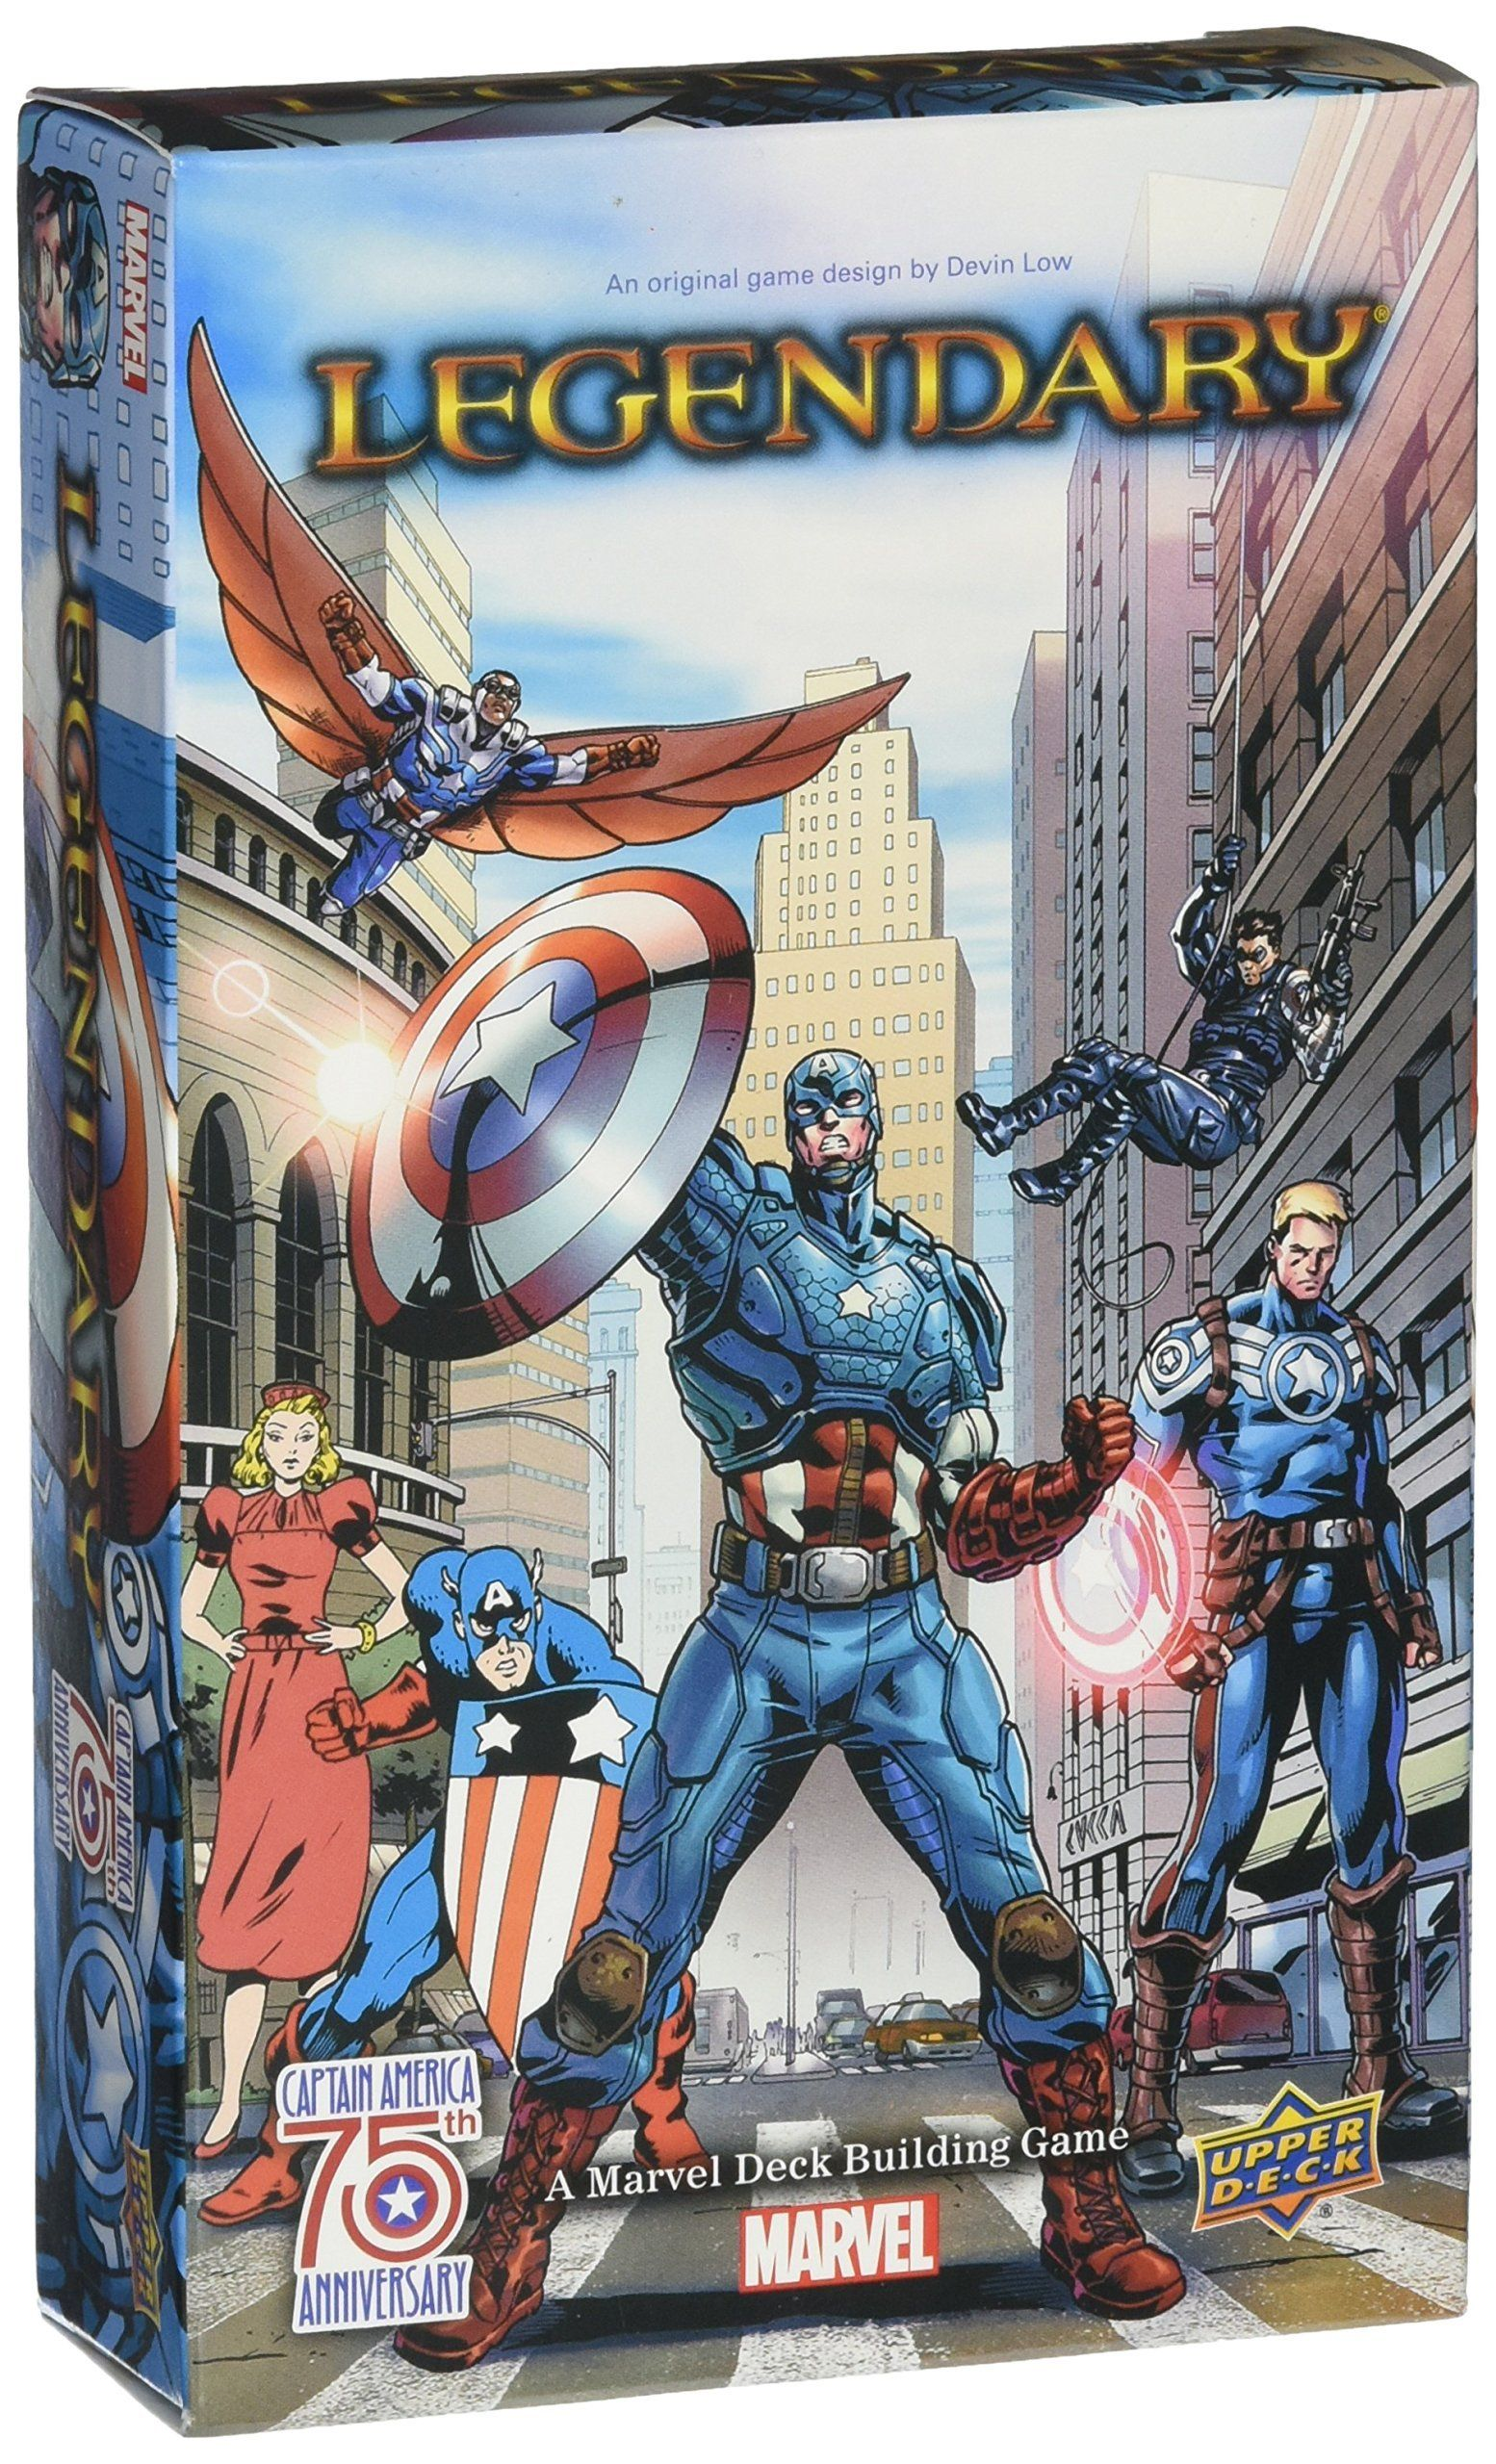 Legendary A Deck Building Game Captain America 75th